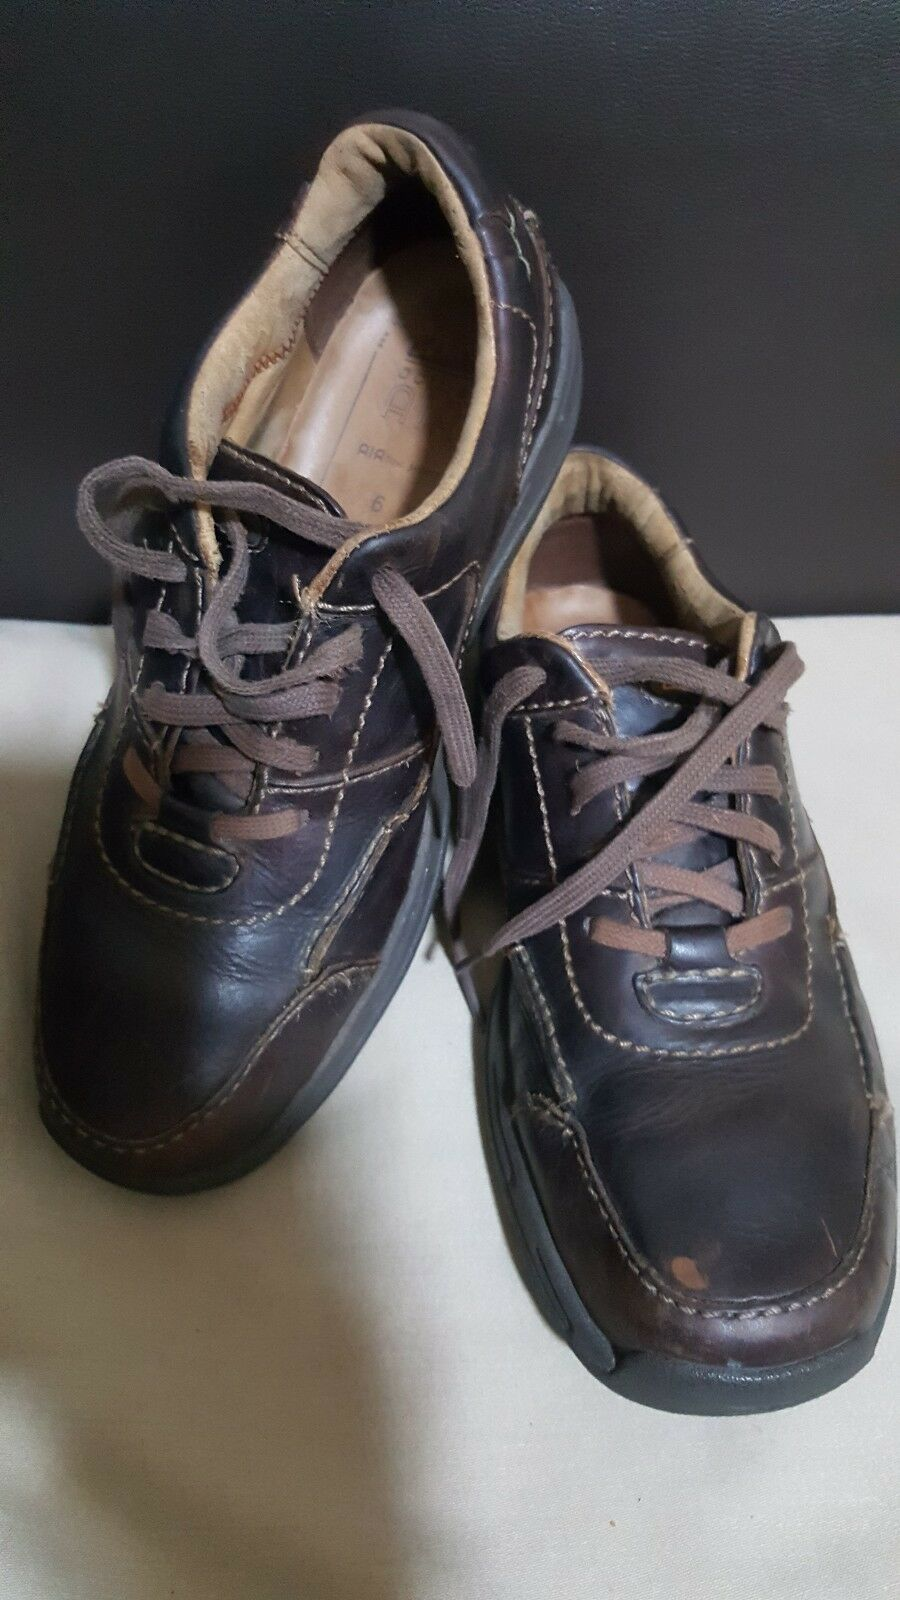 Clarks Active Air flow system Brown Soft Leather shoes size UK 6  EU 40-